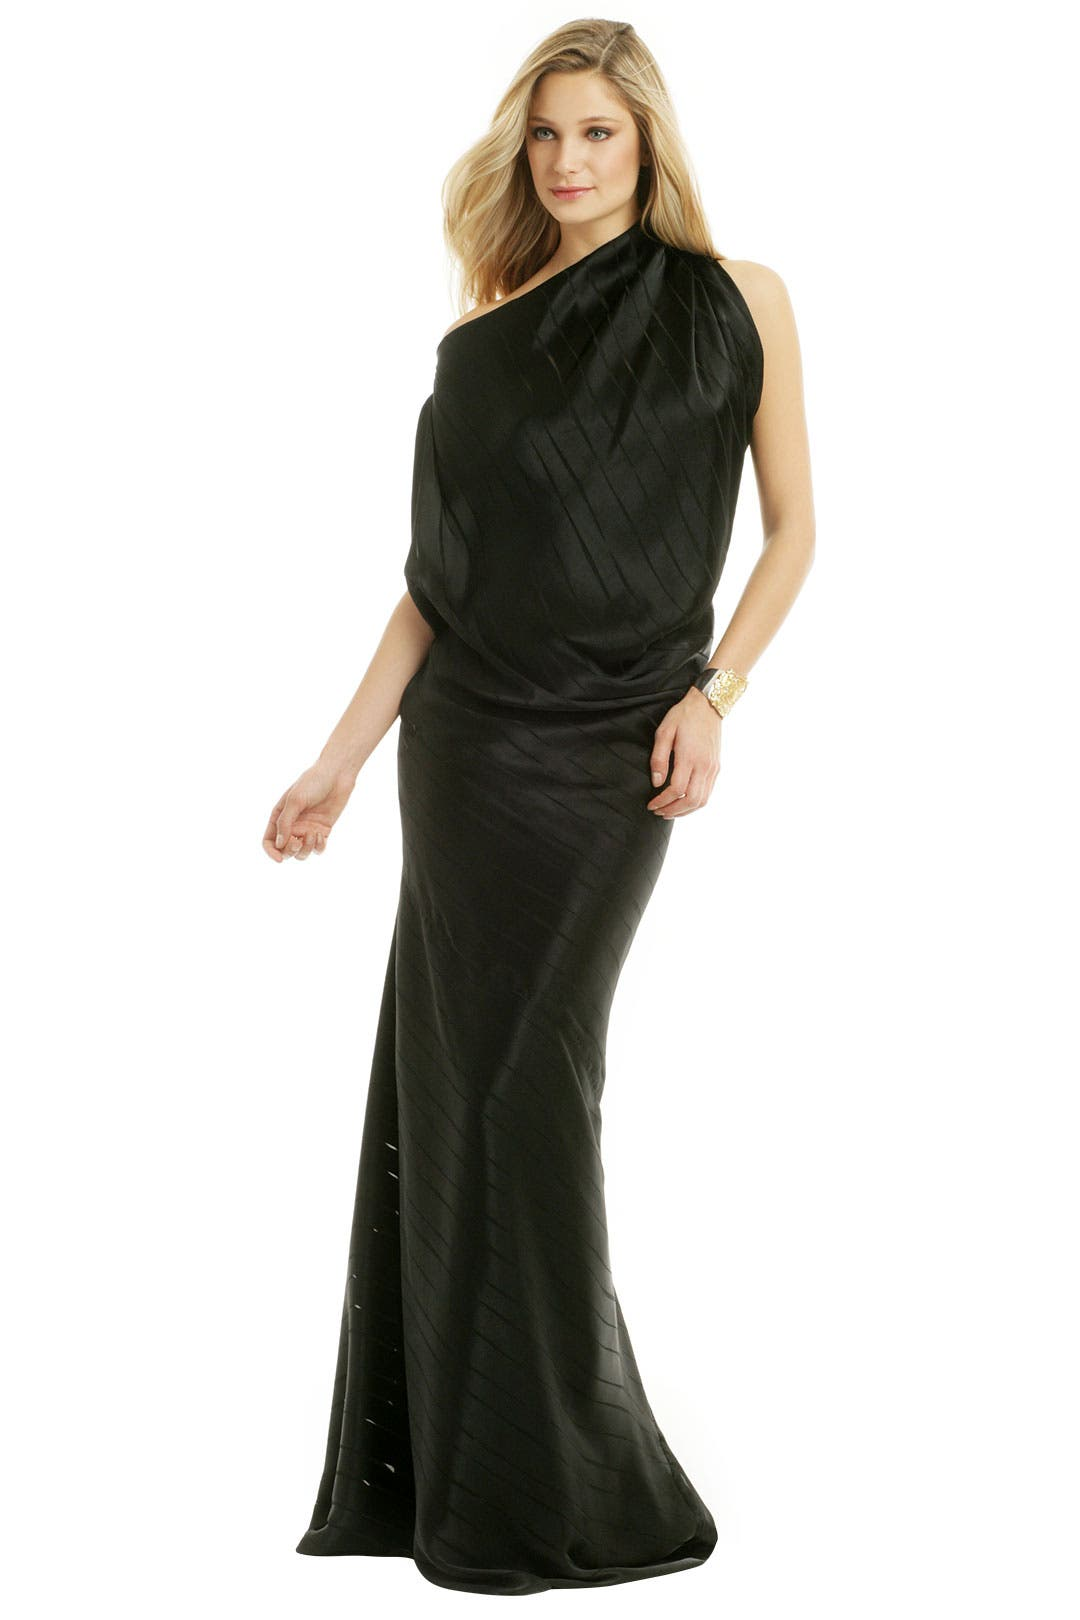 Drape It Diagonal Gown by Plein Sud